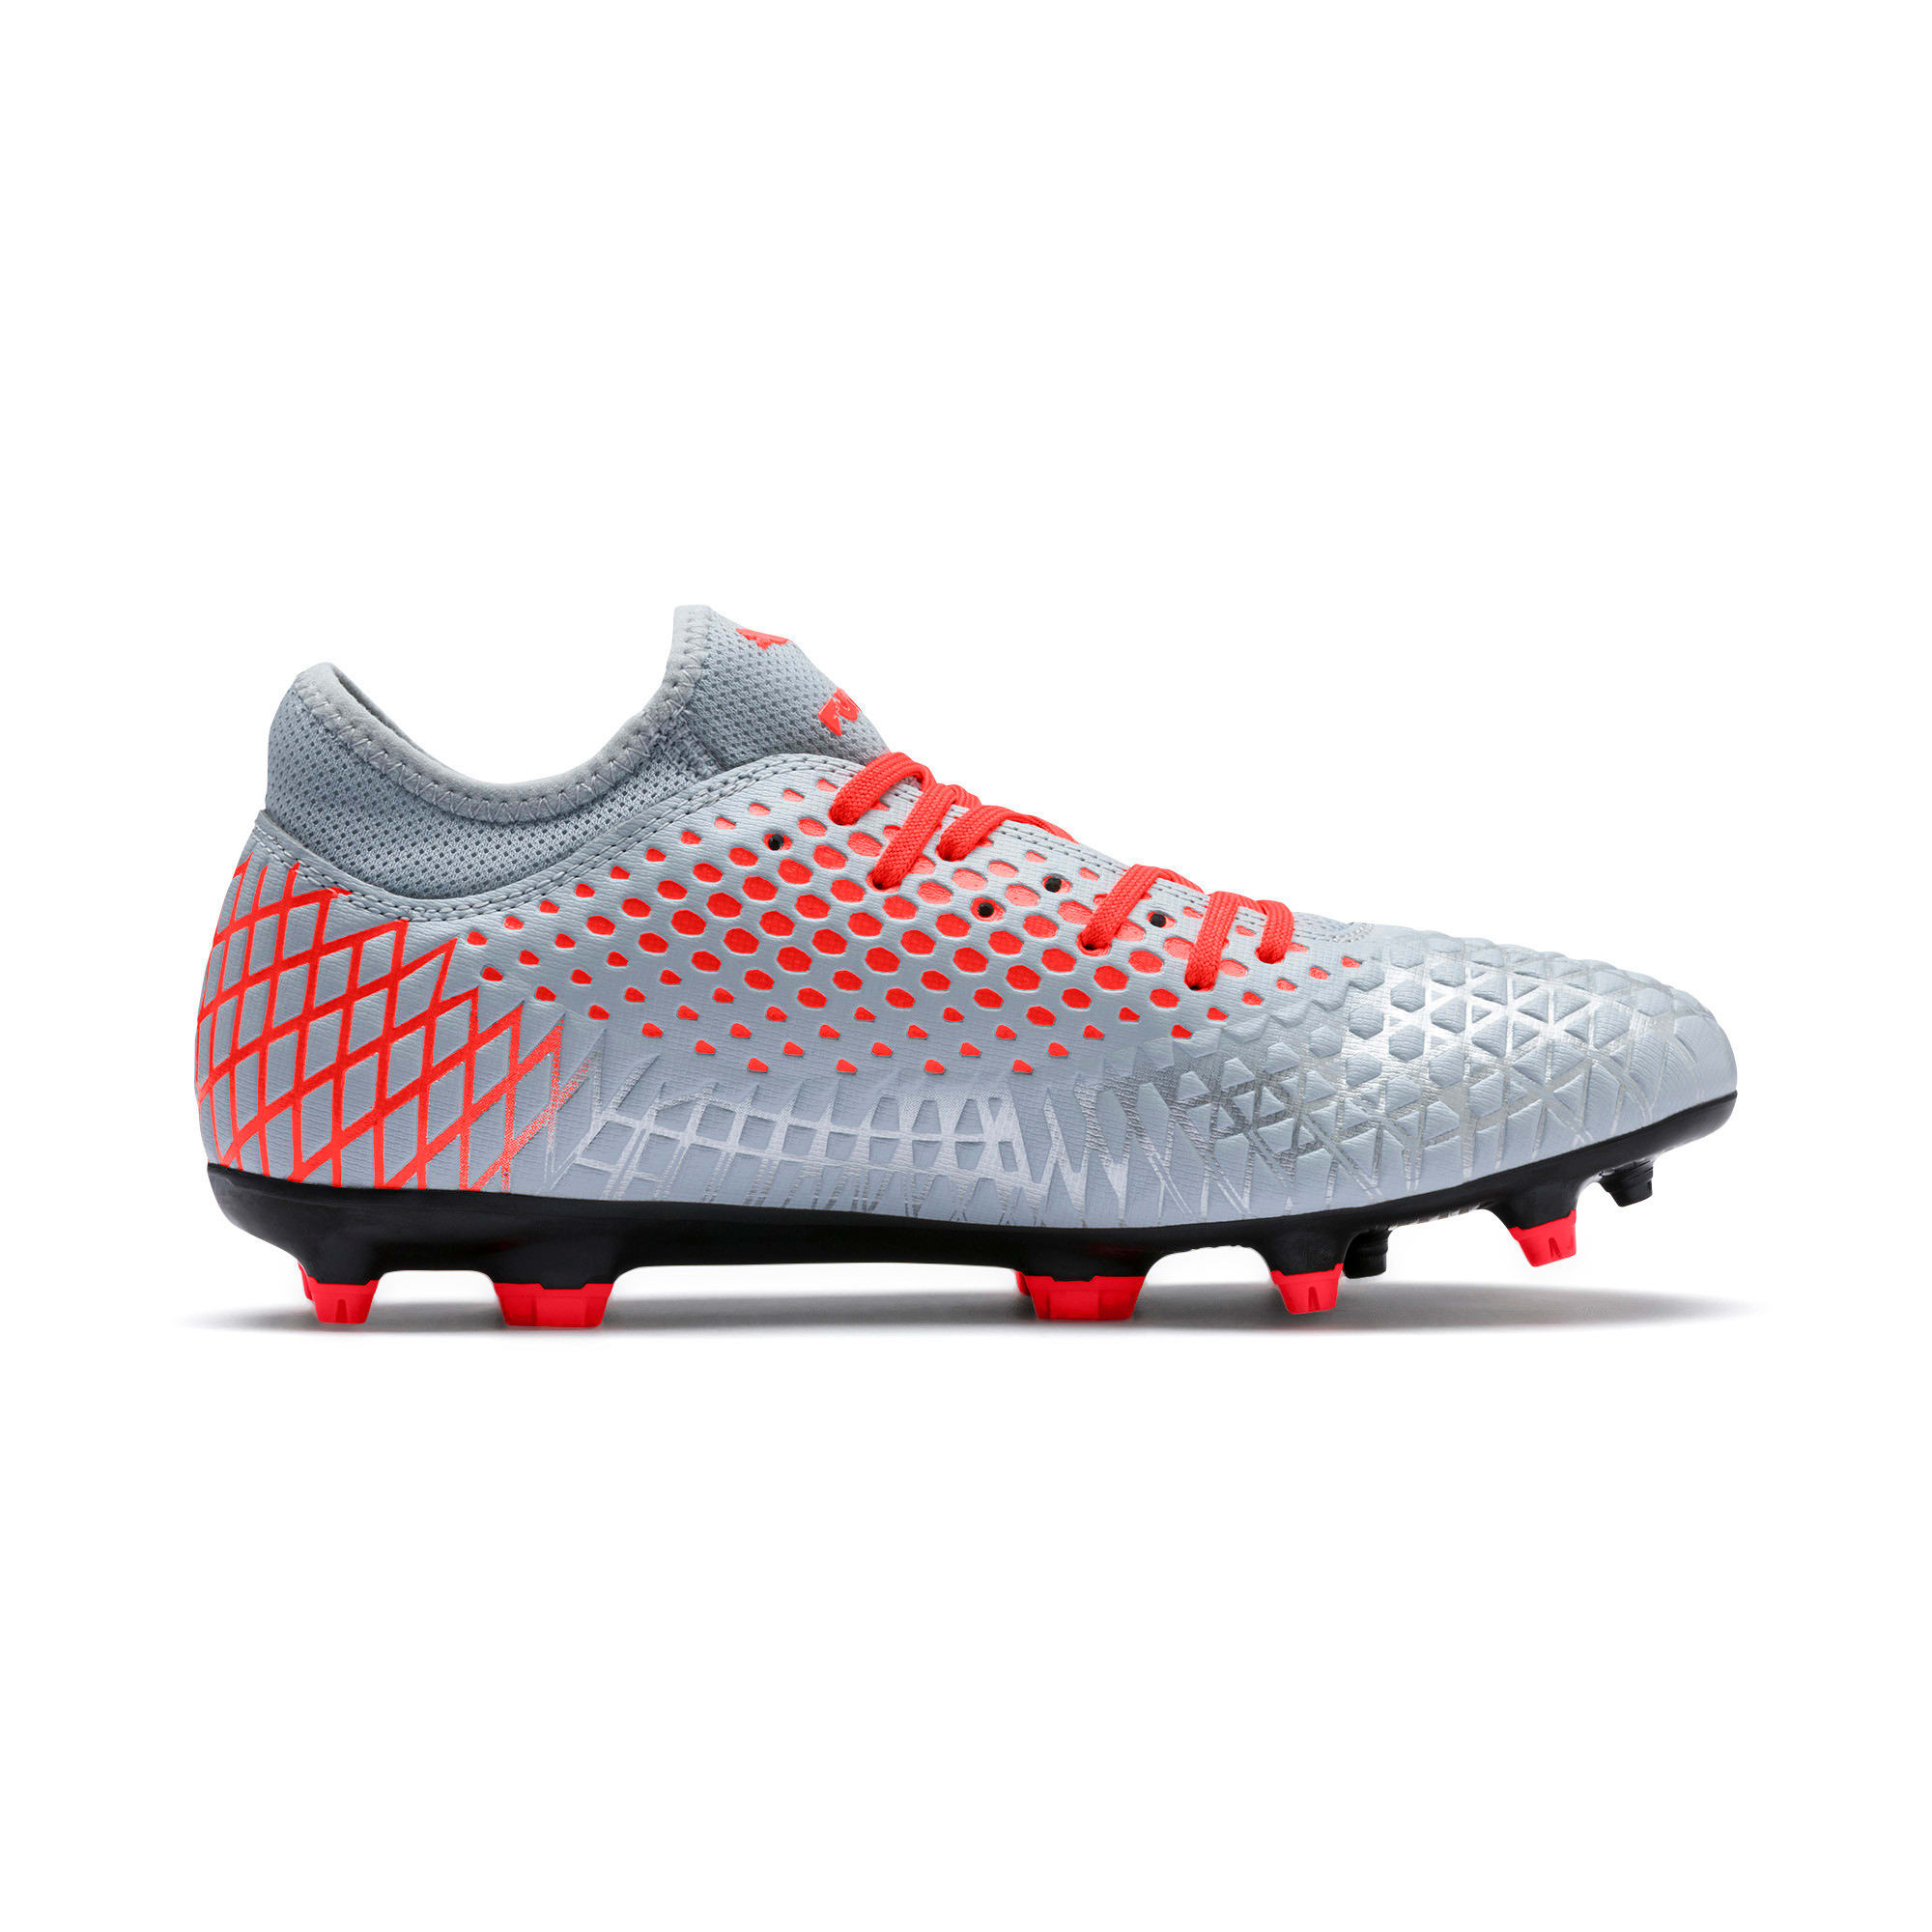 Thumbnail 6 of FUTURE 4.4 FG/AG Men's Football Boots, Glacial Blue-Nrgy Red, medium